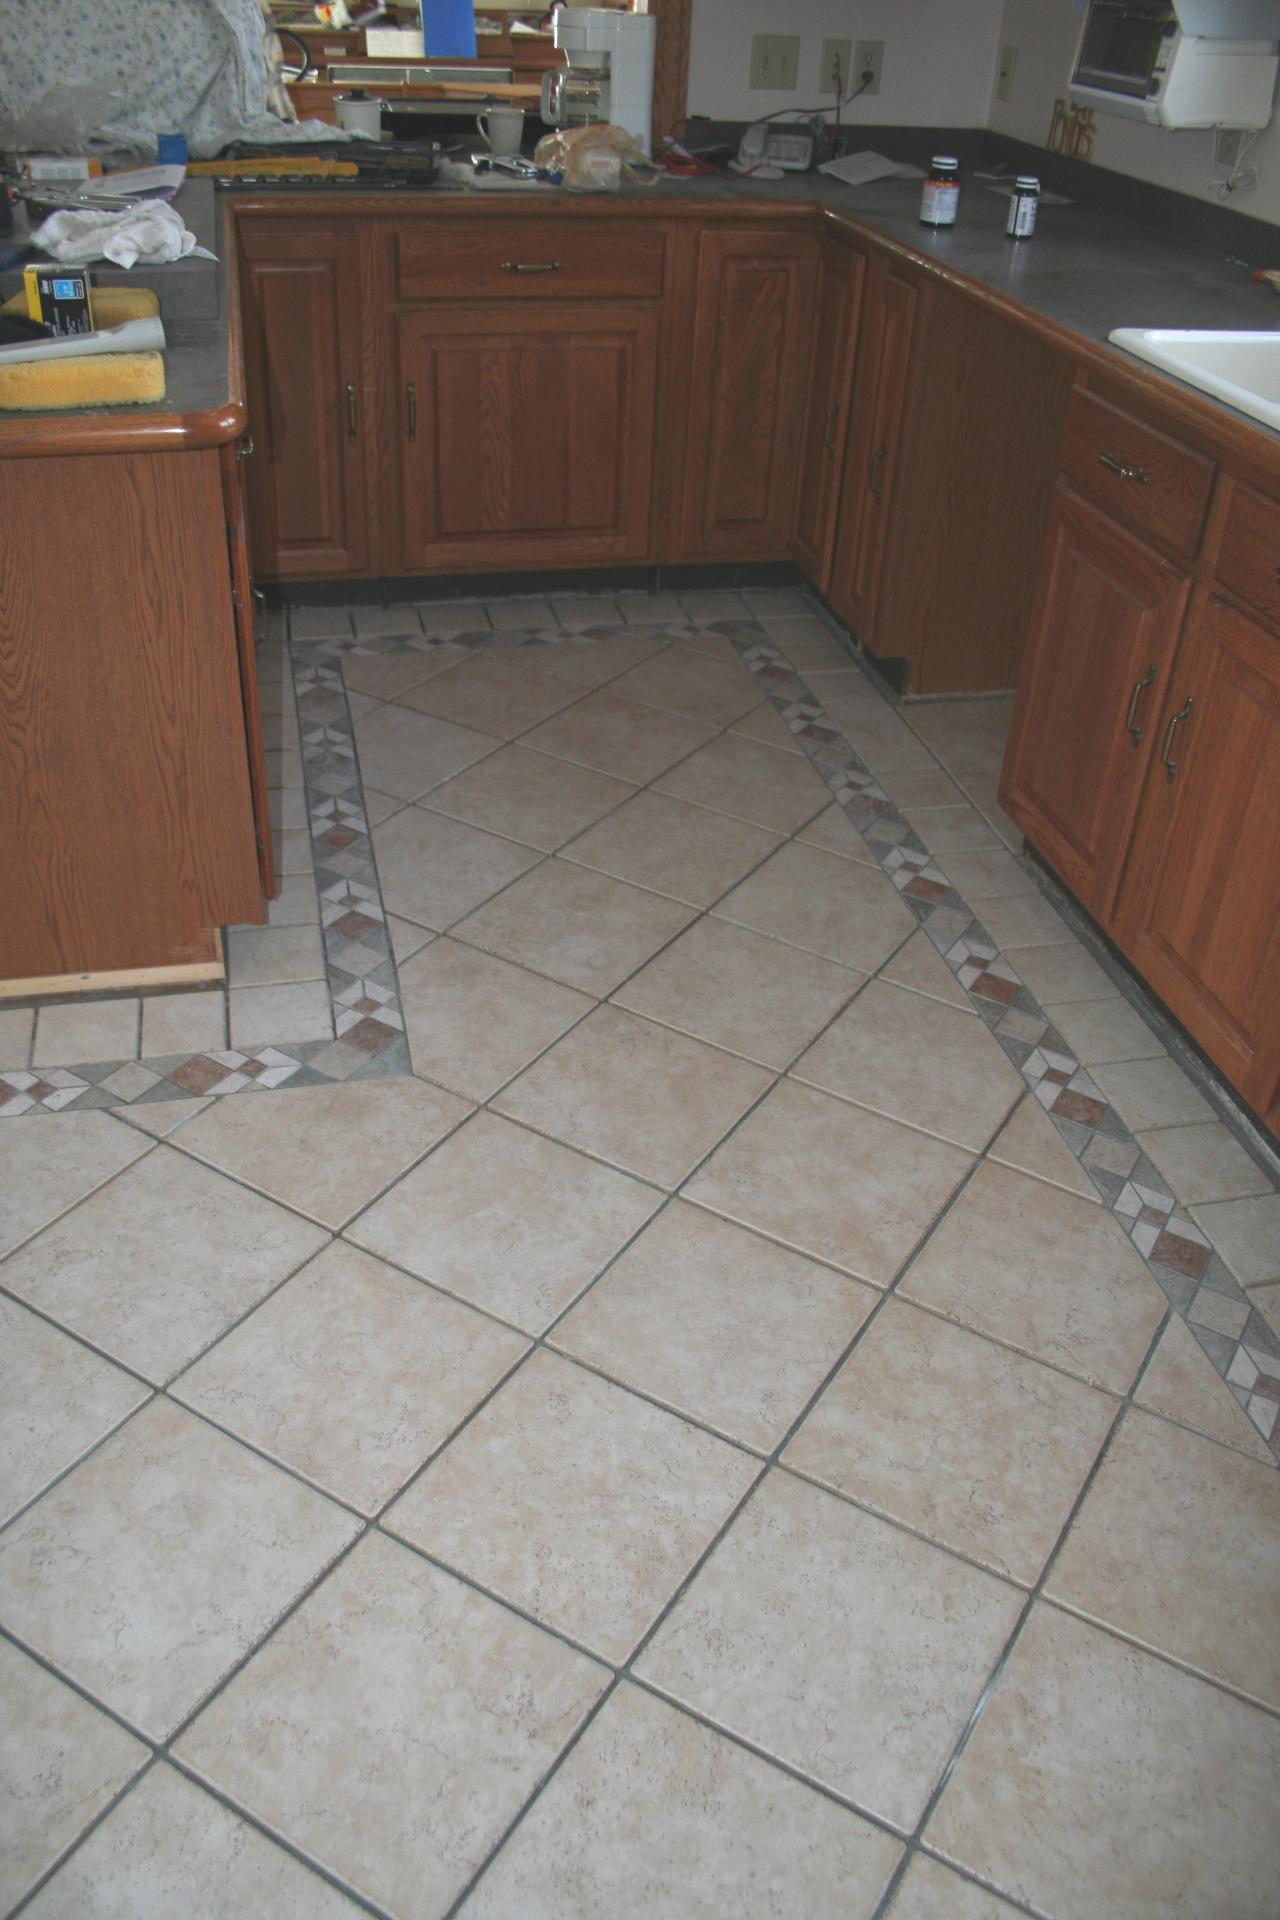 Nest homes construction kitchen heated tile floorremodeling natural looking stone tiles dailygadgetfo Images